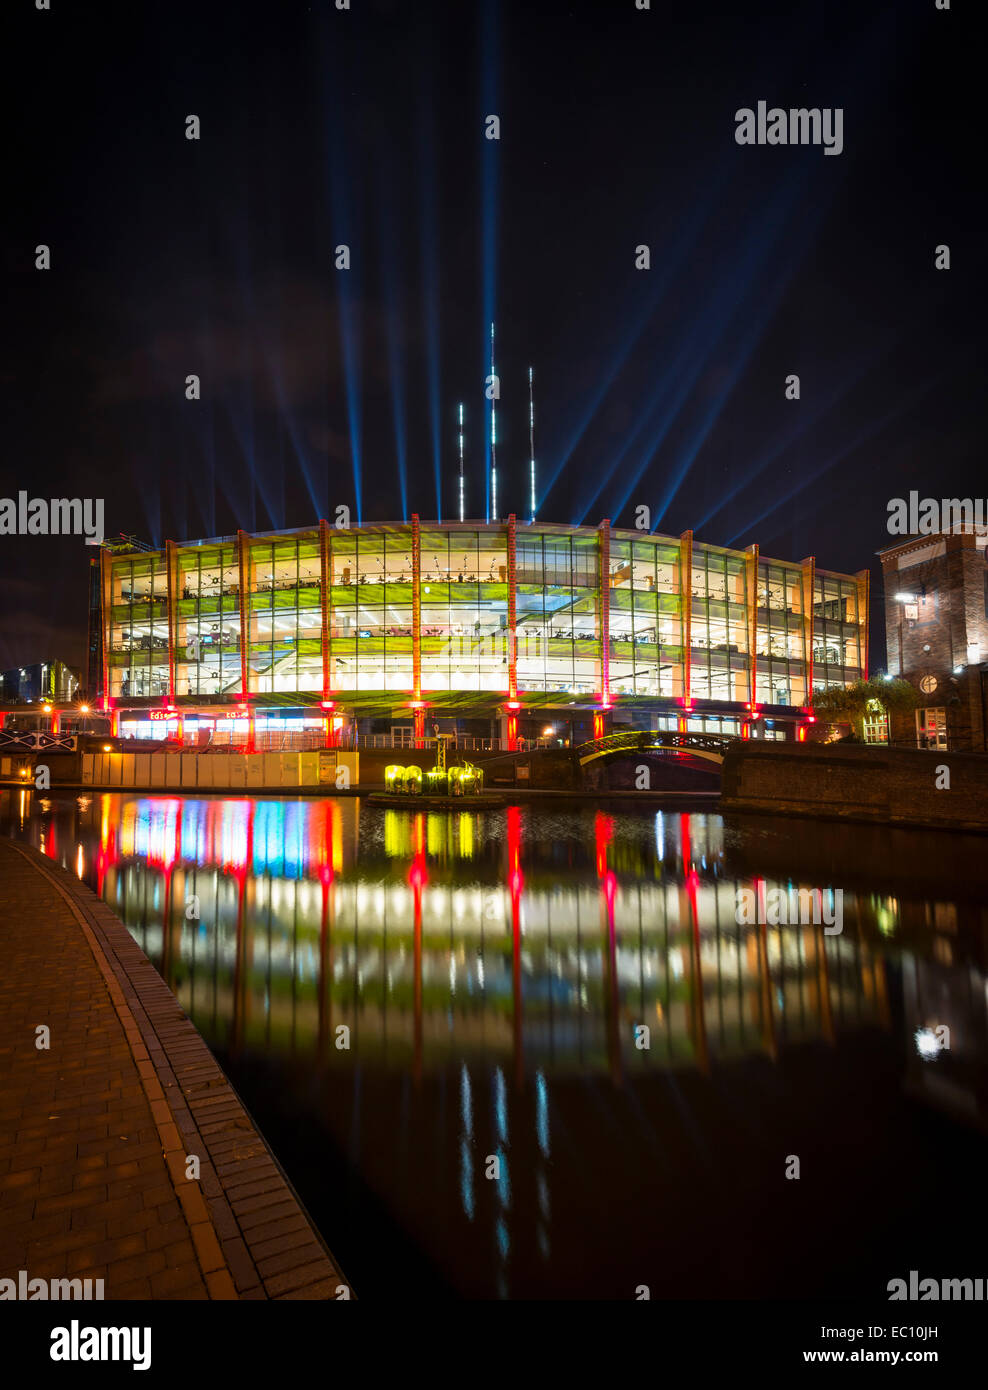 The National Indoor Arena: The NIA, Birmingham. The Barclaycard Arena is one of the busiest, large scale indoor - Stock Image